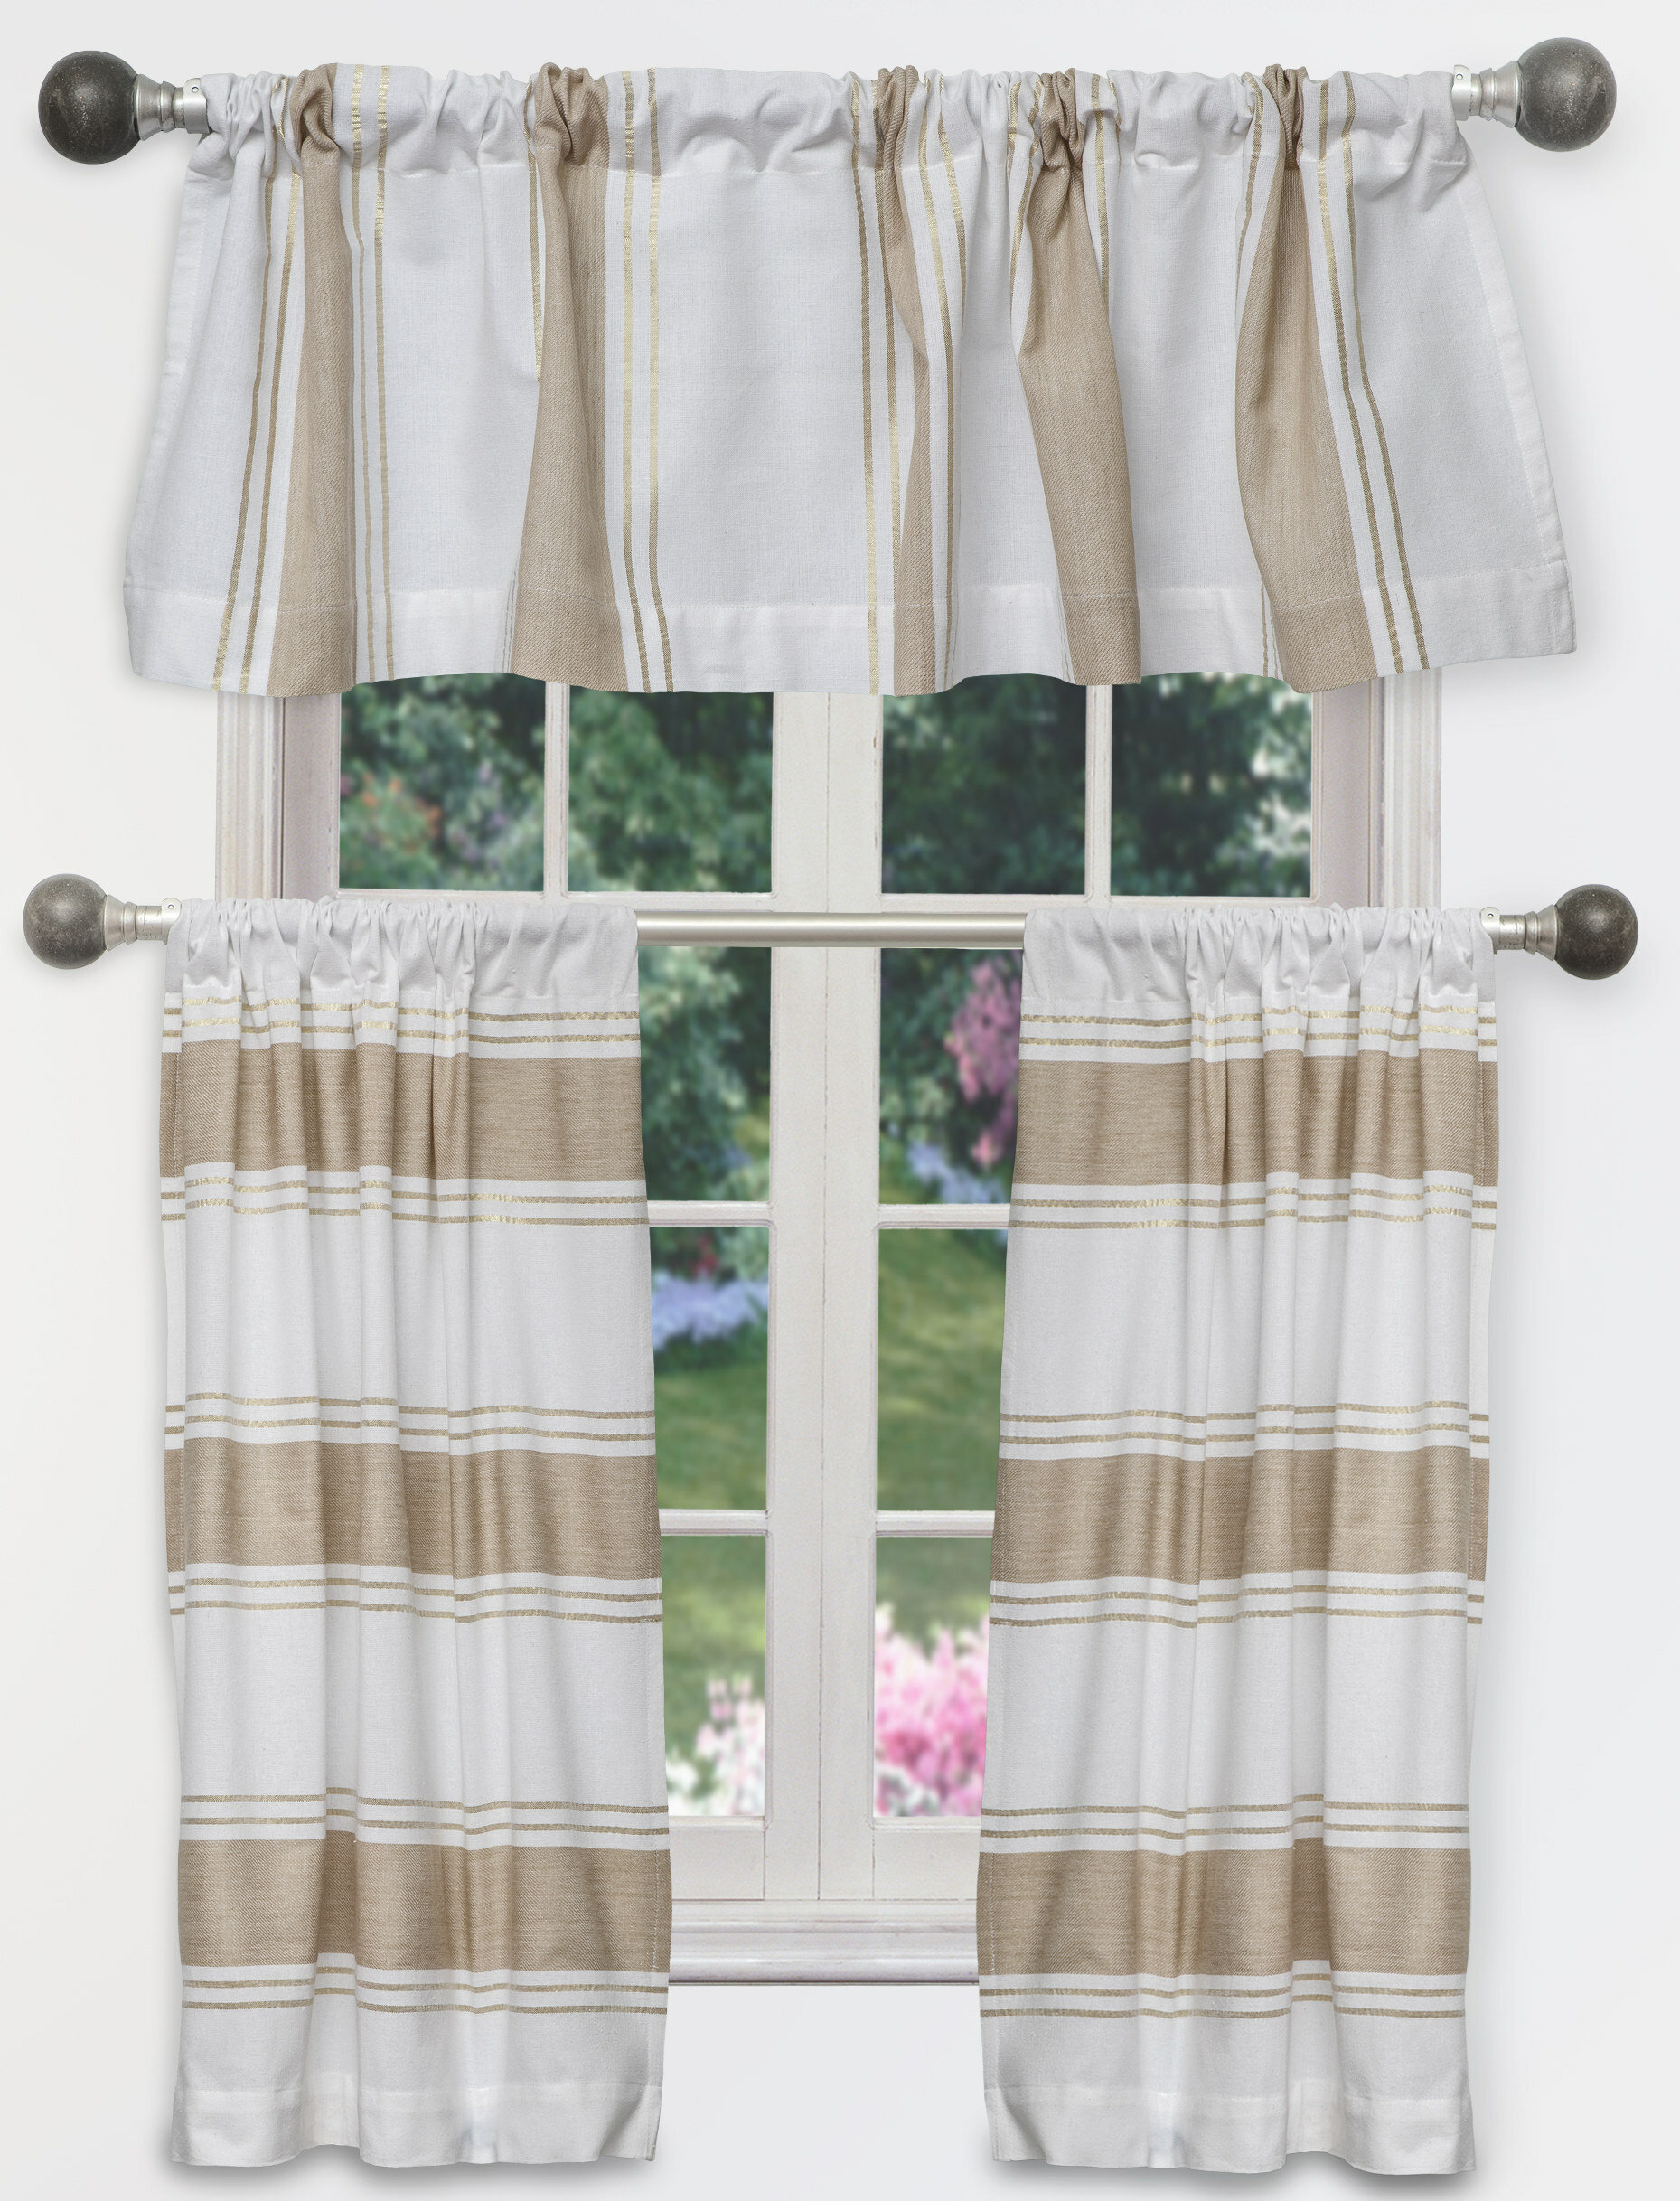 Charlton Home Raci Tier 3 Piece Curtain Set | Wayfair For Modern Subtle Texture Solid White Kitchen Curtain Parts With Grommets Tier And Valance Options (View 19 of 20)